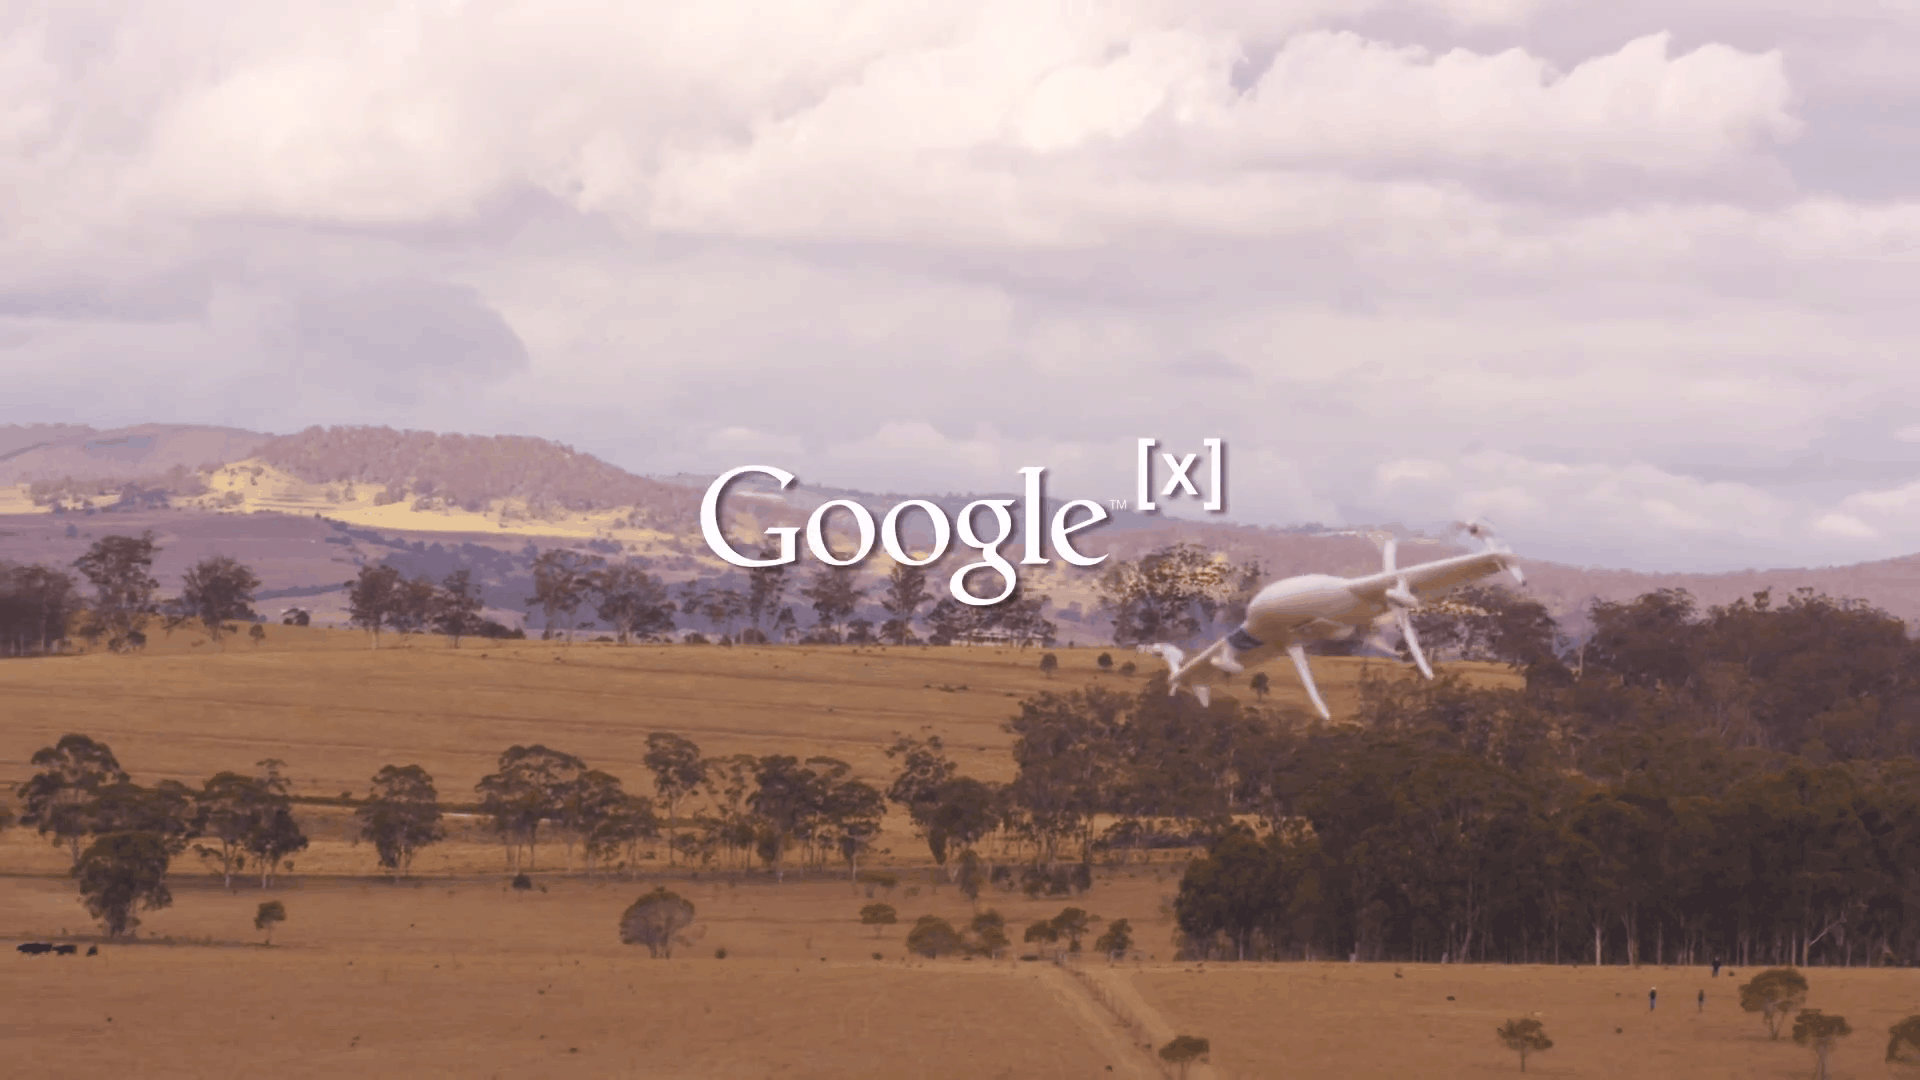 On The Wing: Google X Does Delivery Via Air Drones